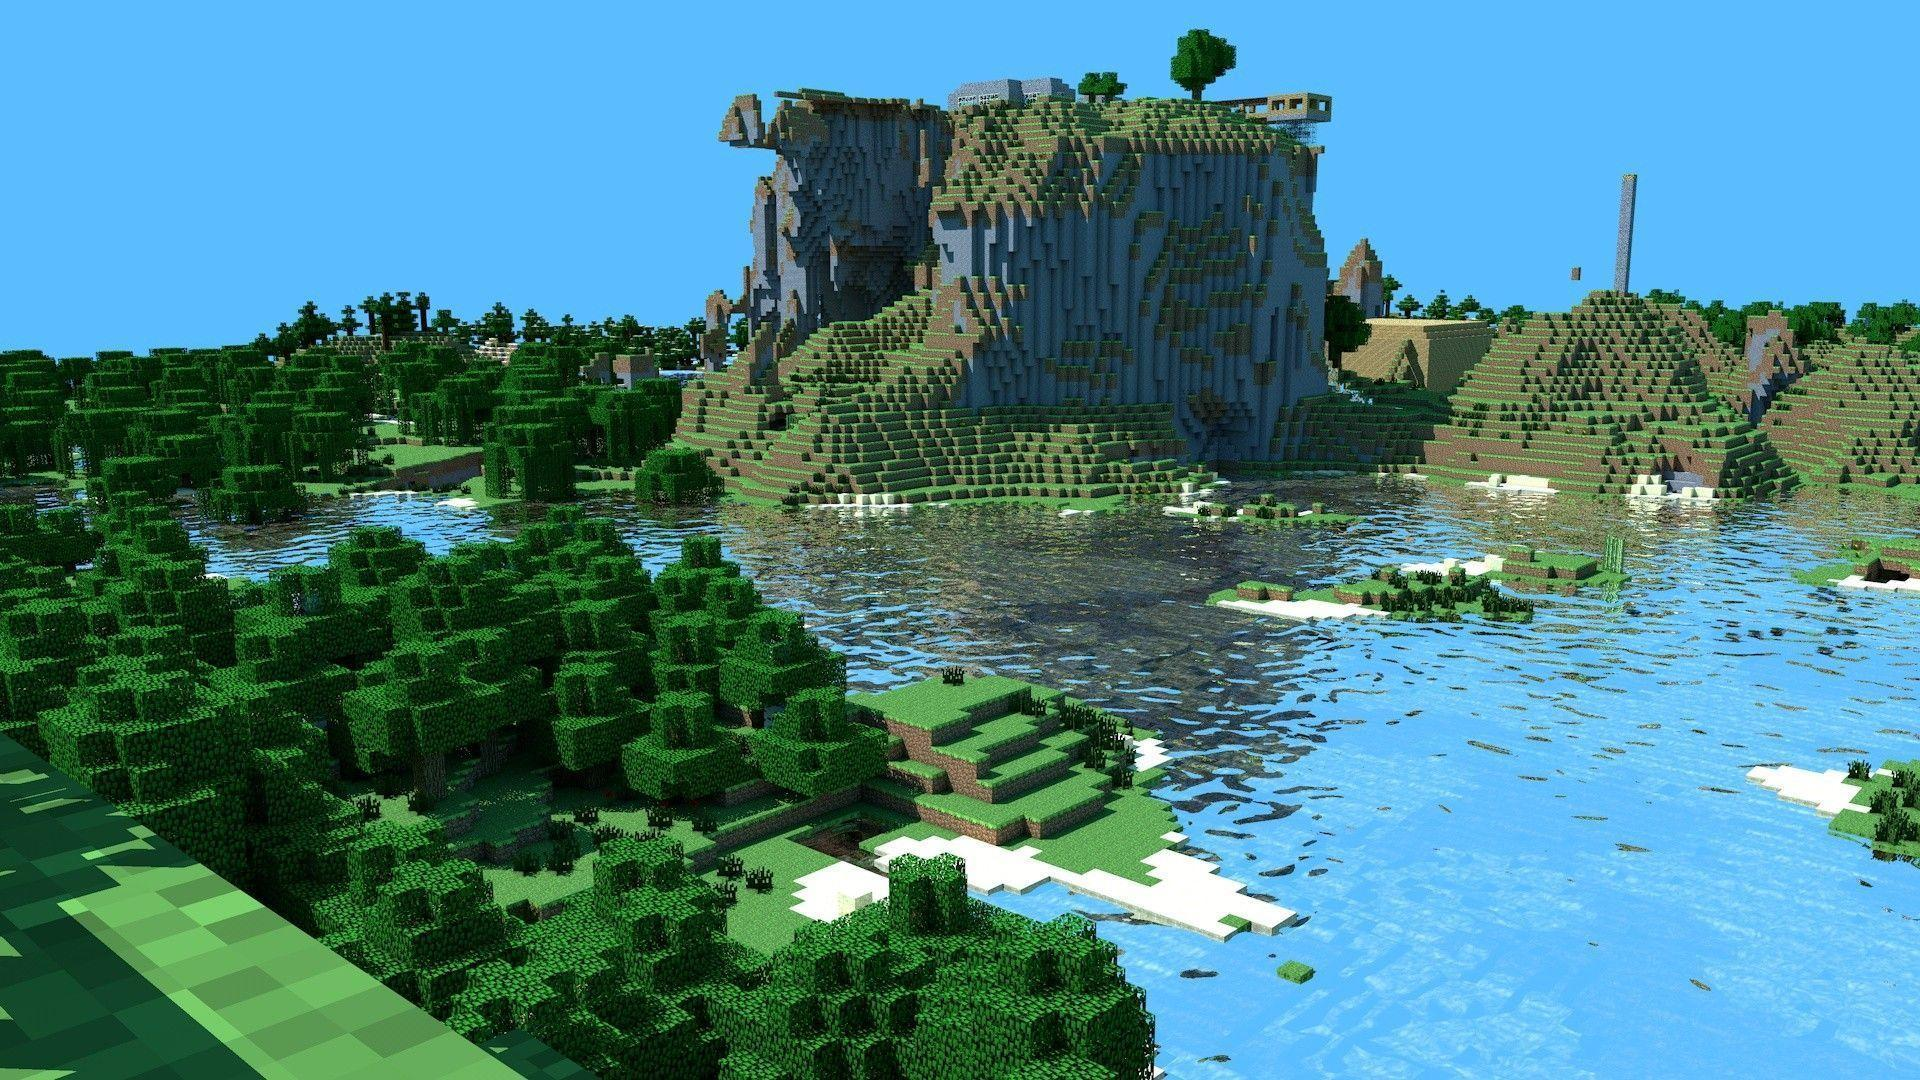 Minecraft Hd Wallpapers and Background